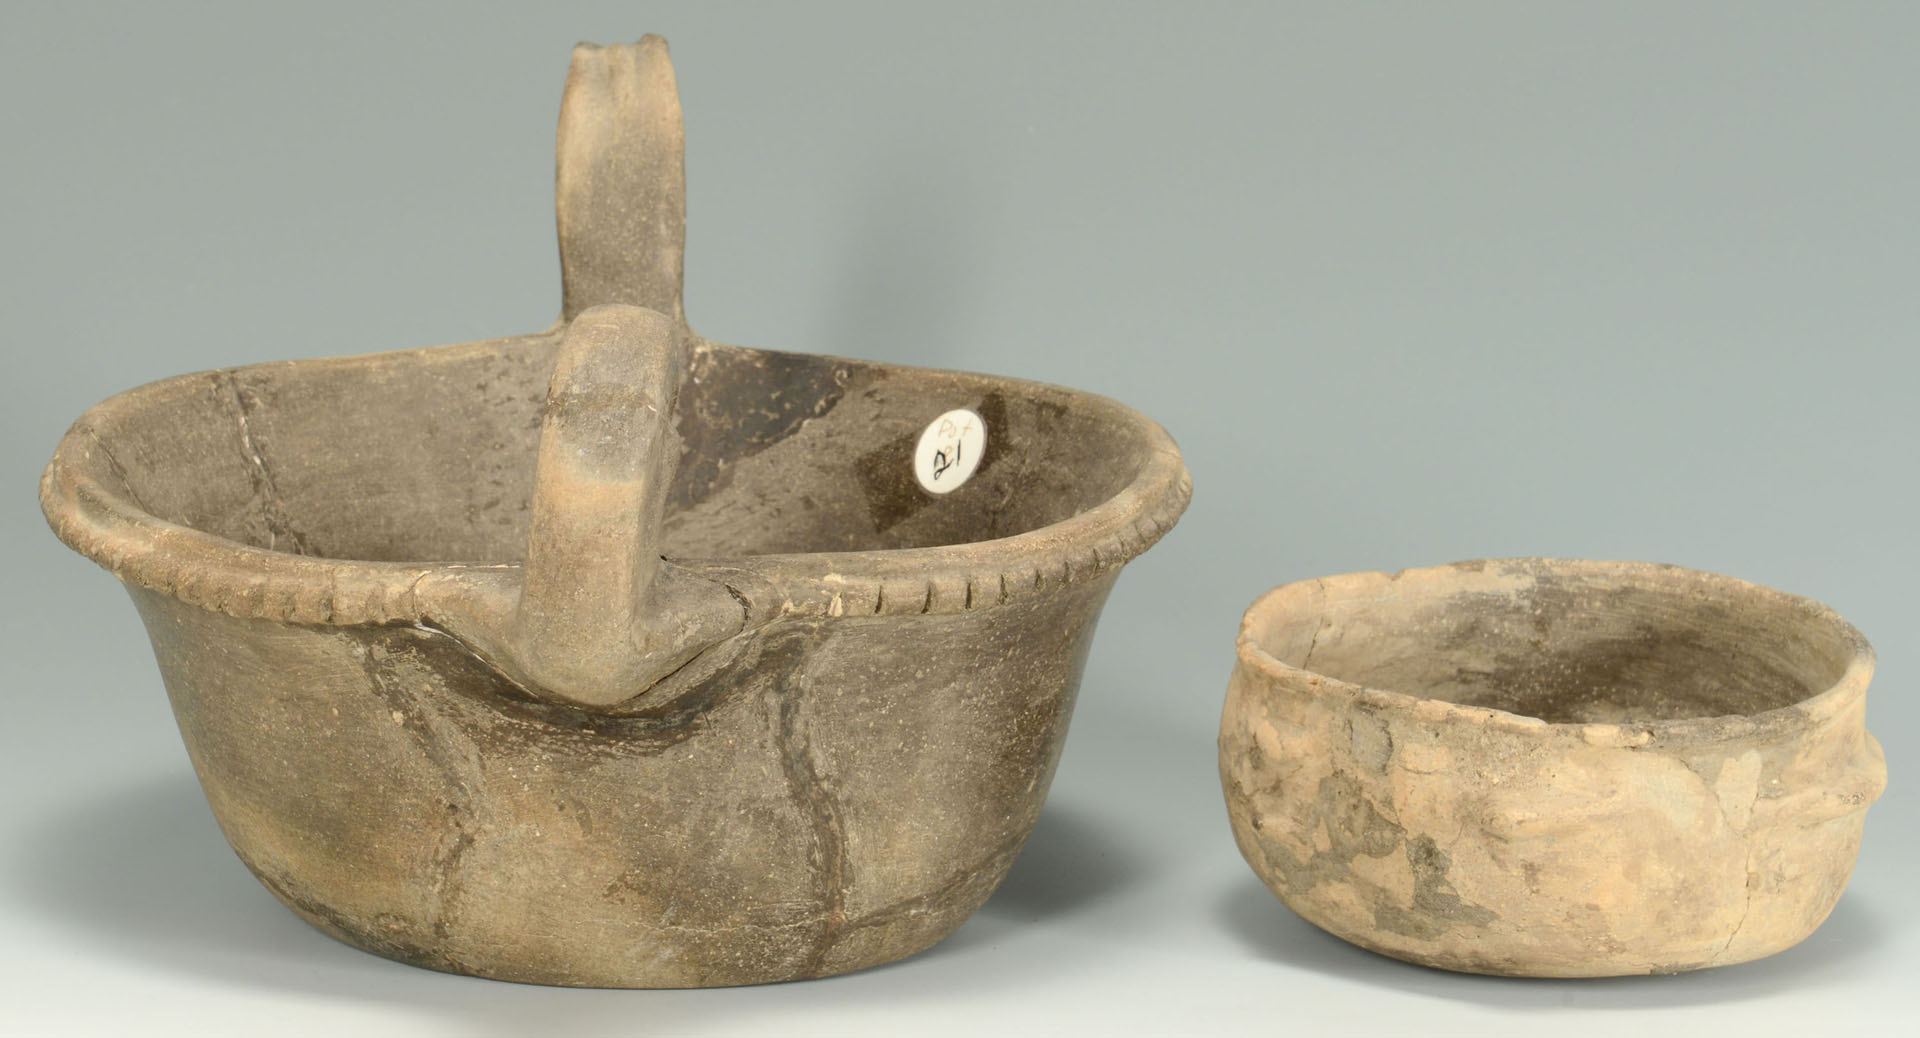 Lot 644: 2 Mississippian Greyware Bowls with Effigy Designs